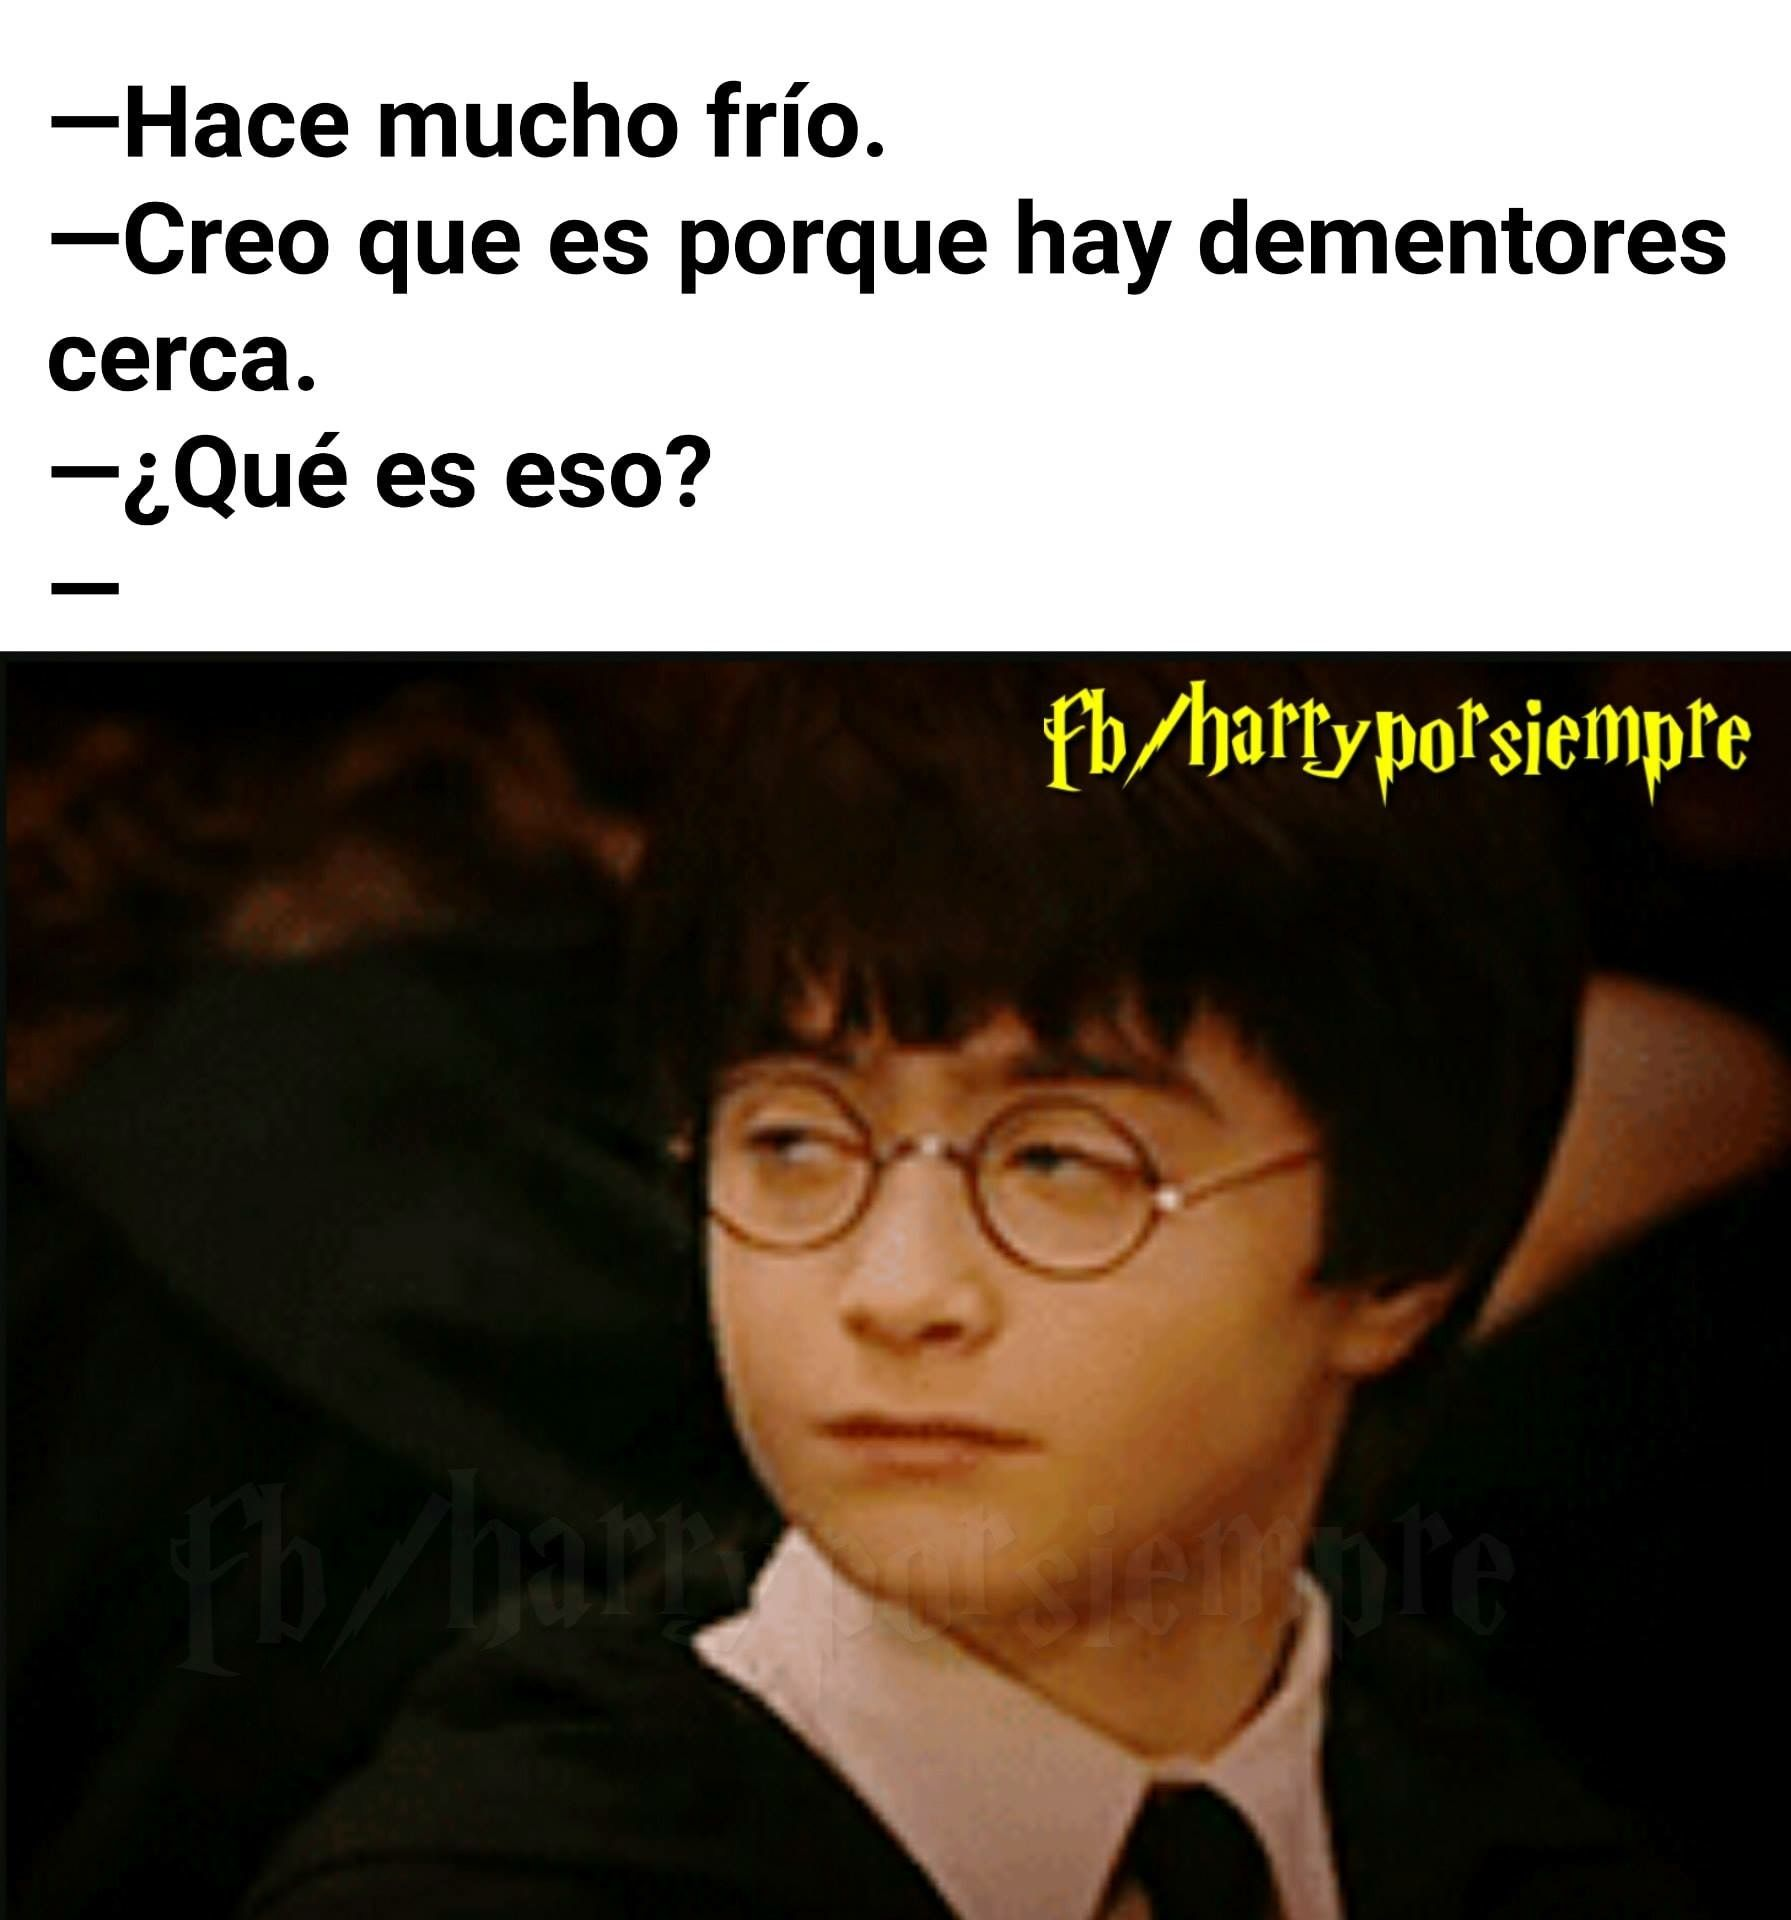 I Translated That In Like 30 Seconds And Finally I Got It And Started Laughing My Family Th Memes De Harry Potter Libros De Harry Potter Harry Potter Gracioso